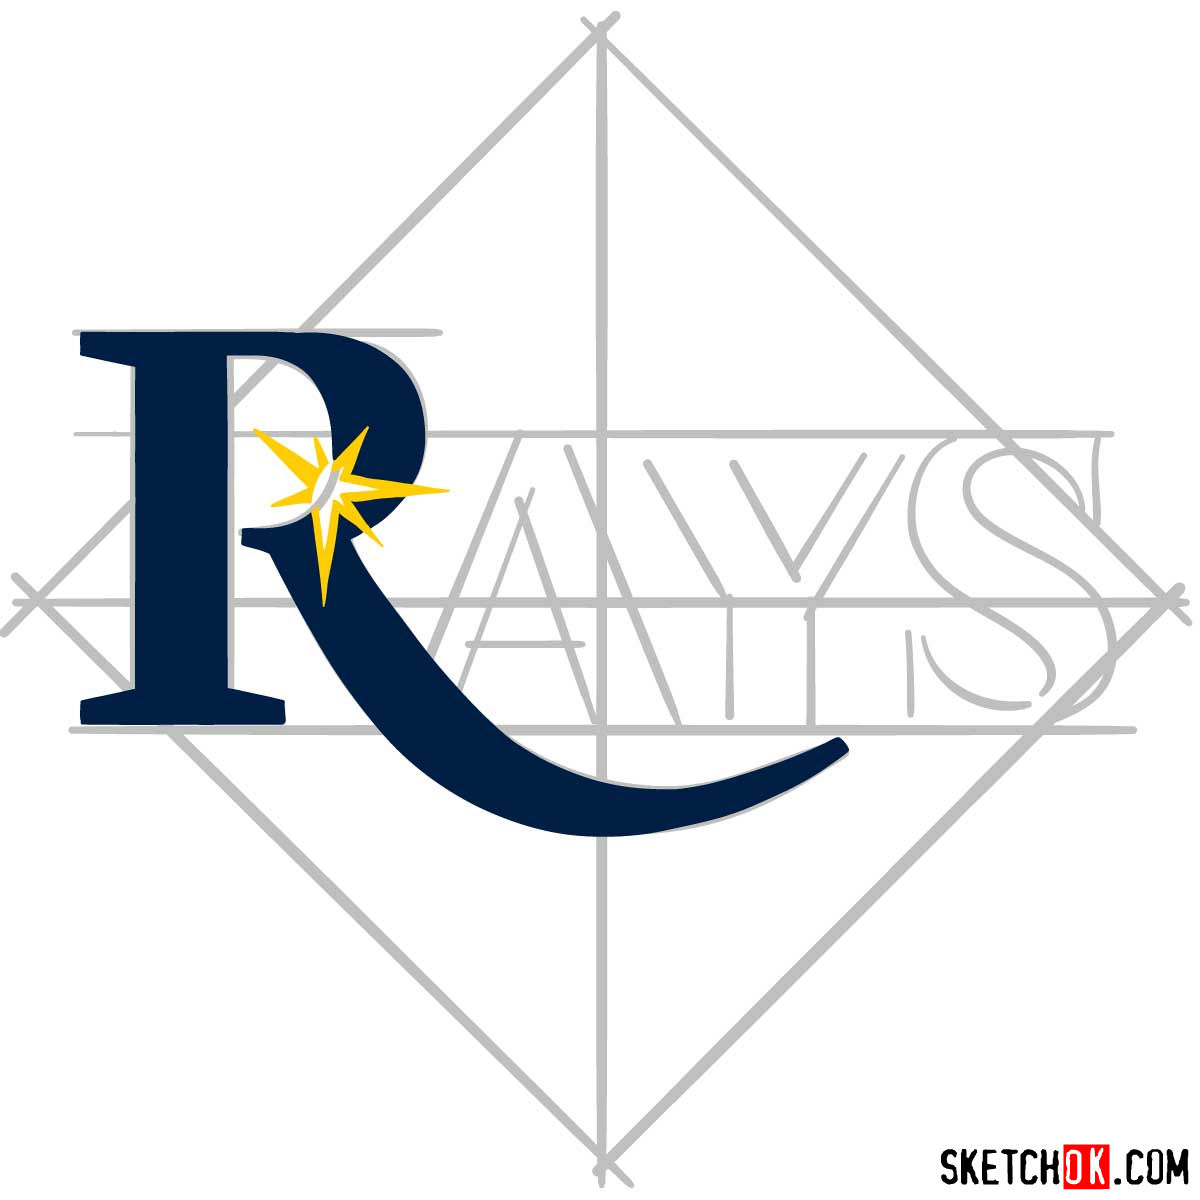 How to draw Tampa Bay Rays logo | MLB logos - step 04